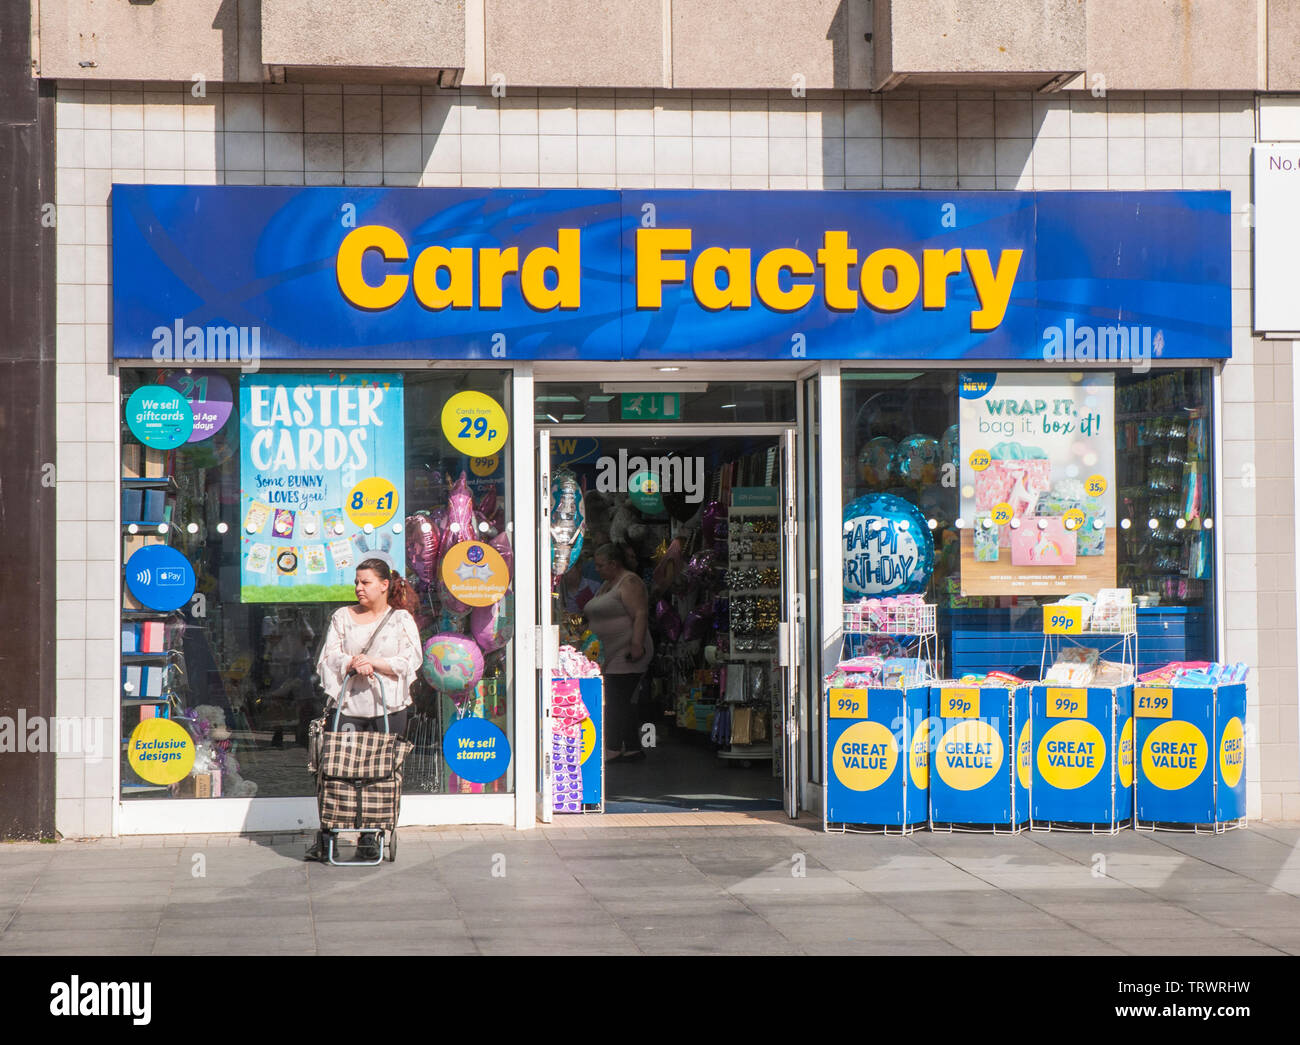 Shop front of Card Factory shop that sells cards for every occasion and a lady with a shopping trolley standing outside - Stock Image